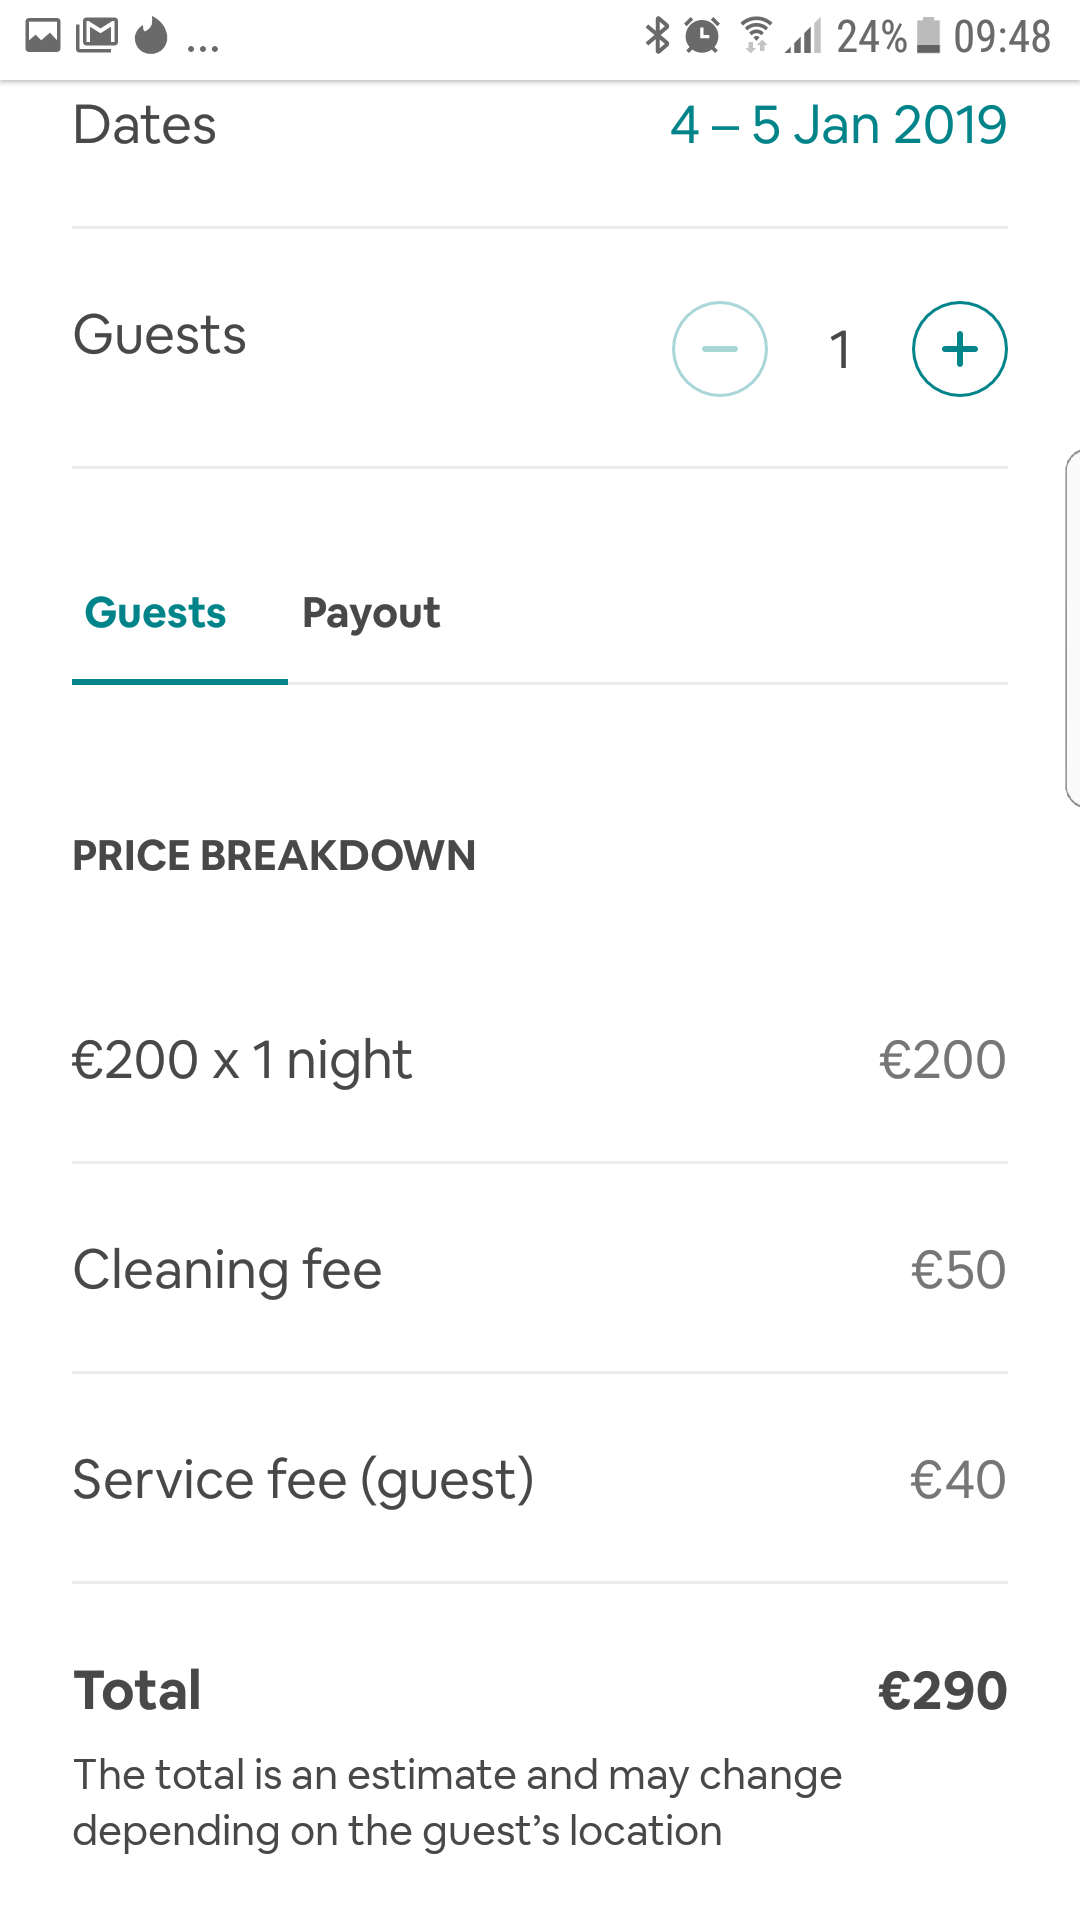 Service fee too high - Airbnb Community